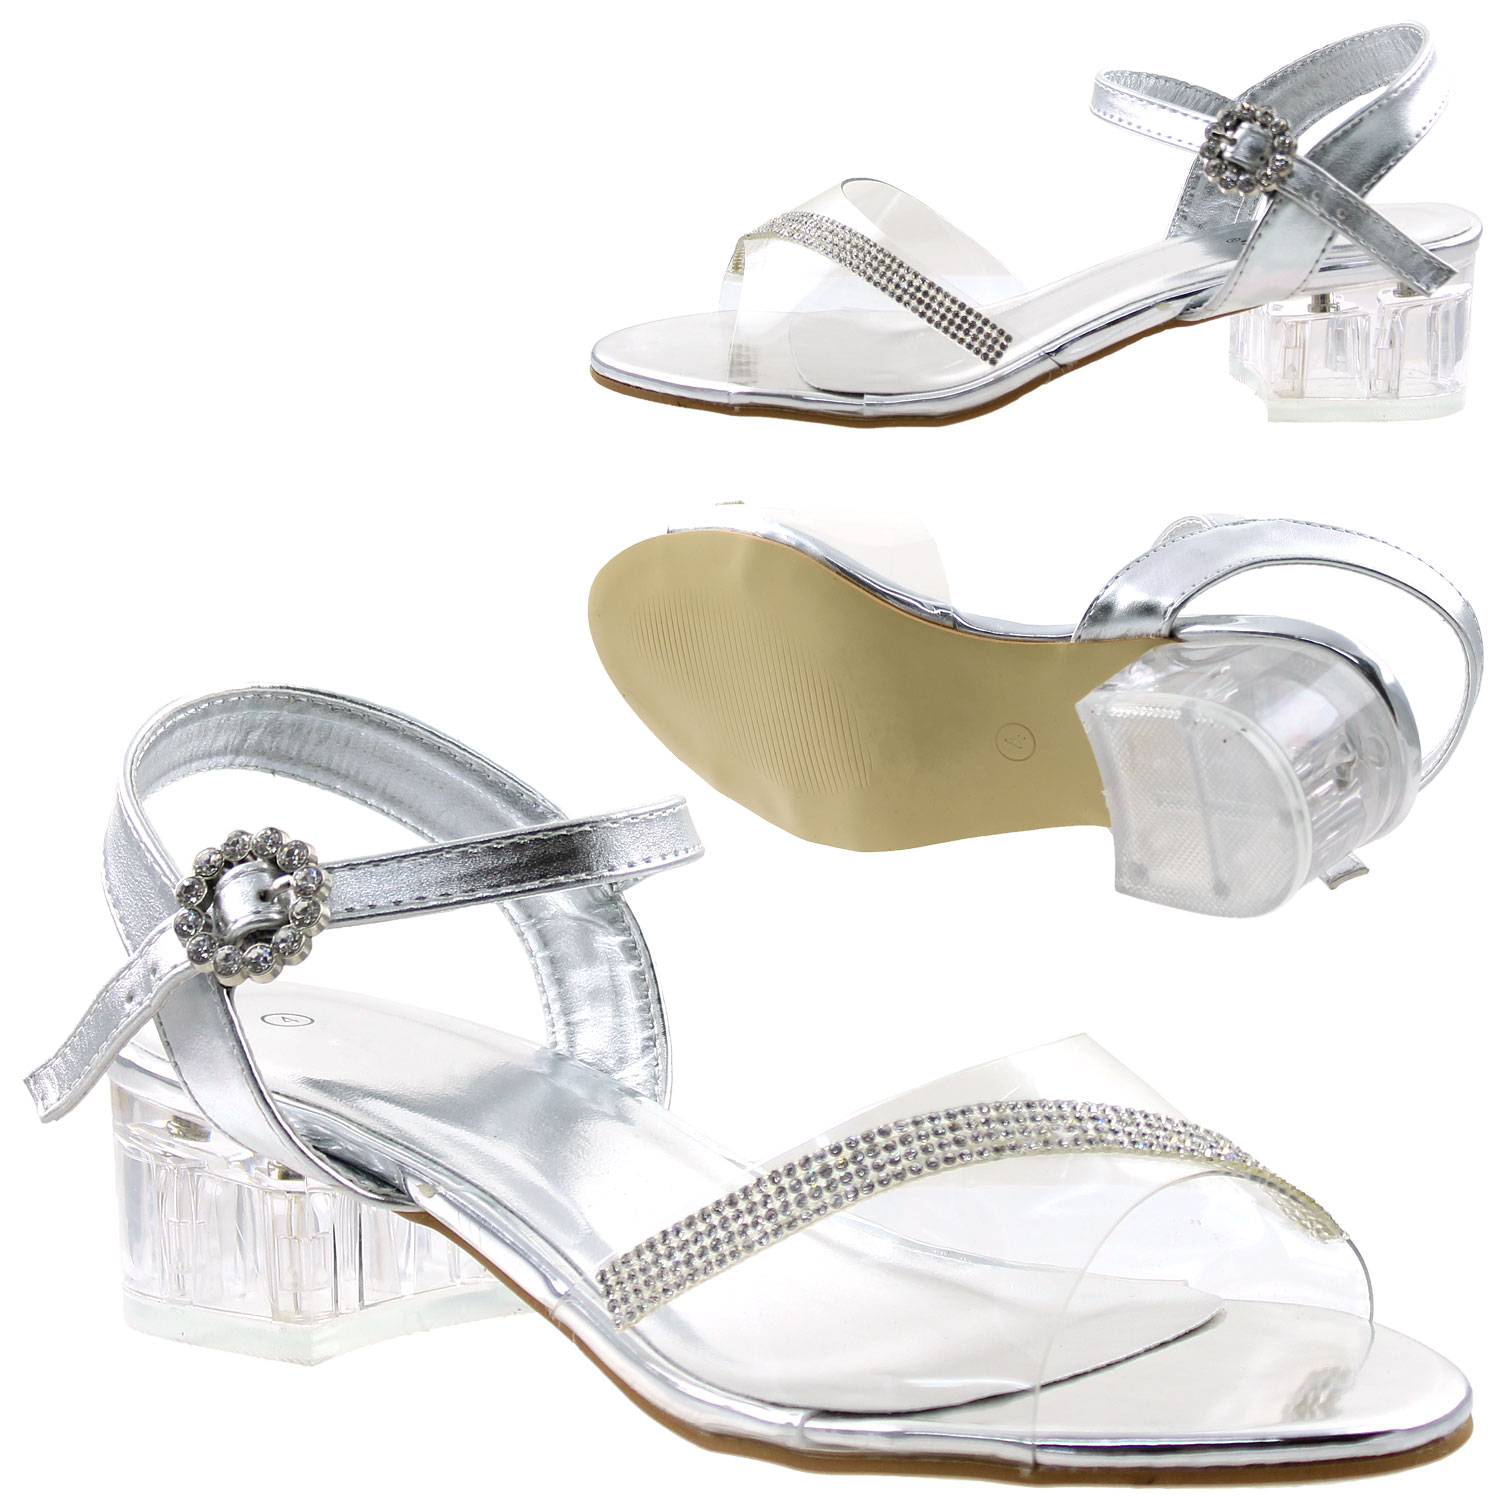 1bbf6d6bc71 Details about Girls Rhinestone Block Heel Ankle Strap Dress Sandals Silver